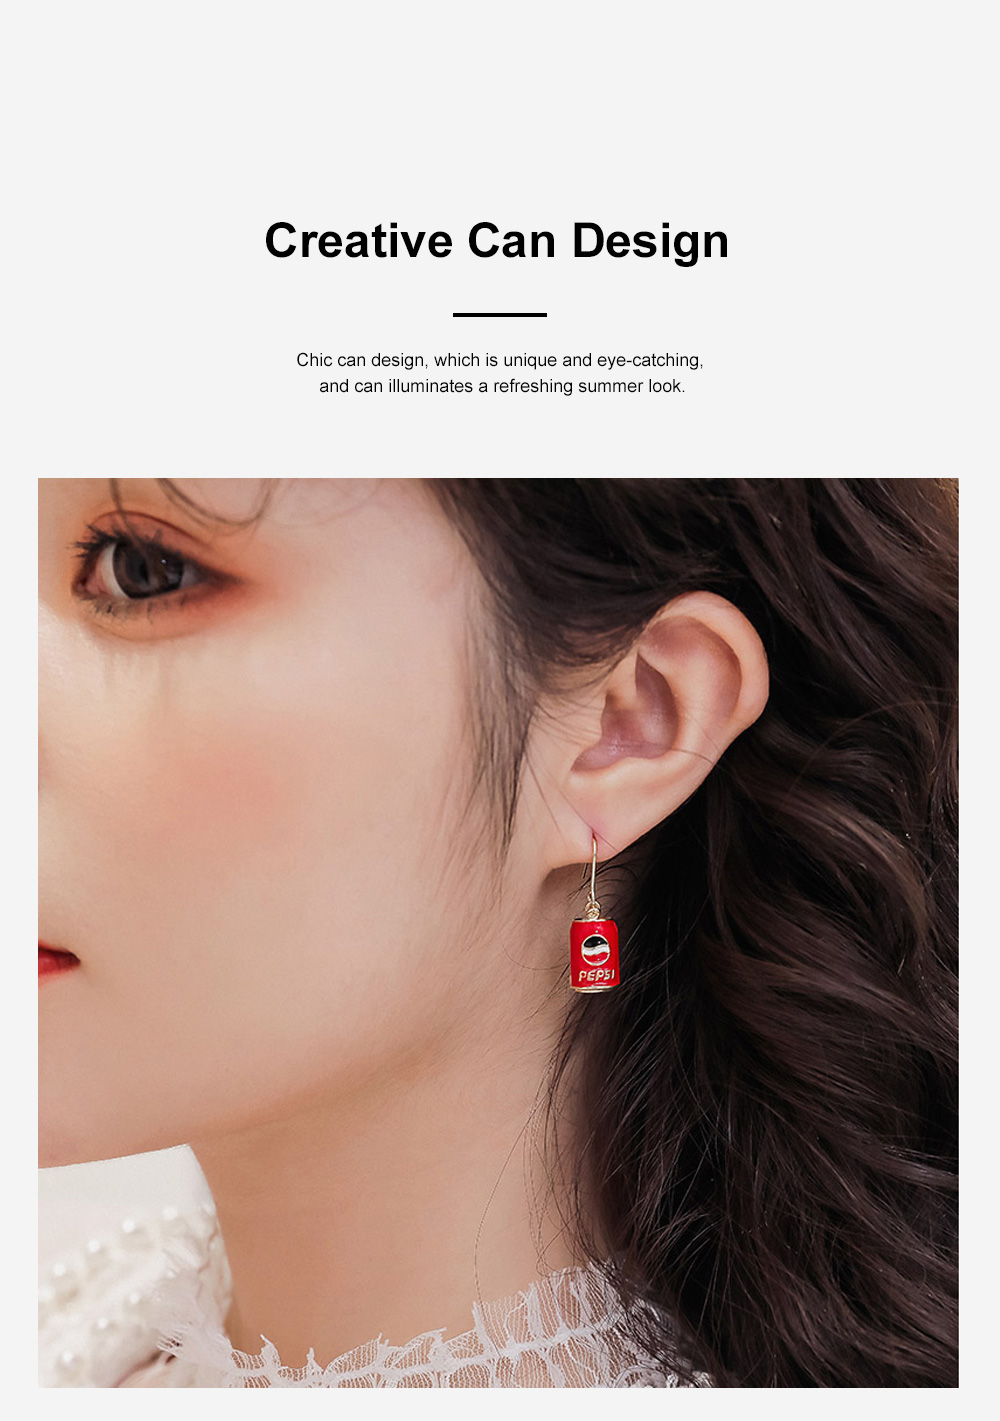 CAROMAY Cola Can Earrings 18K Colored Gold Can Ear Jewelry for Girls Creative Can Accessory for Party Daily Wearing Valentine's Day Present 5